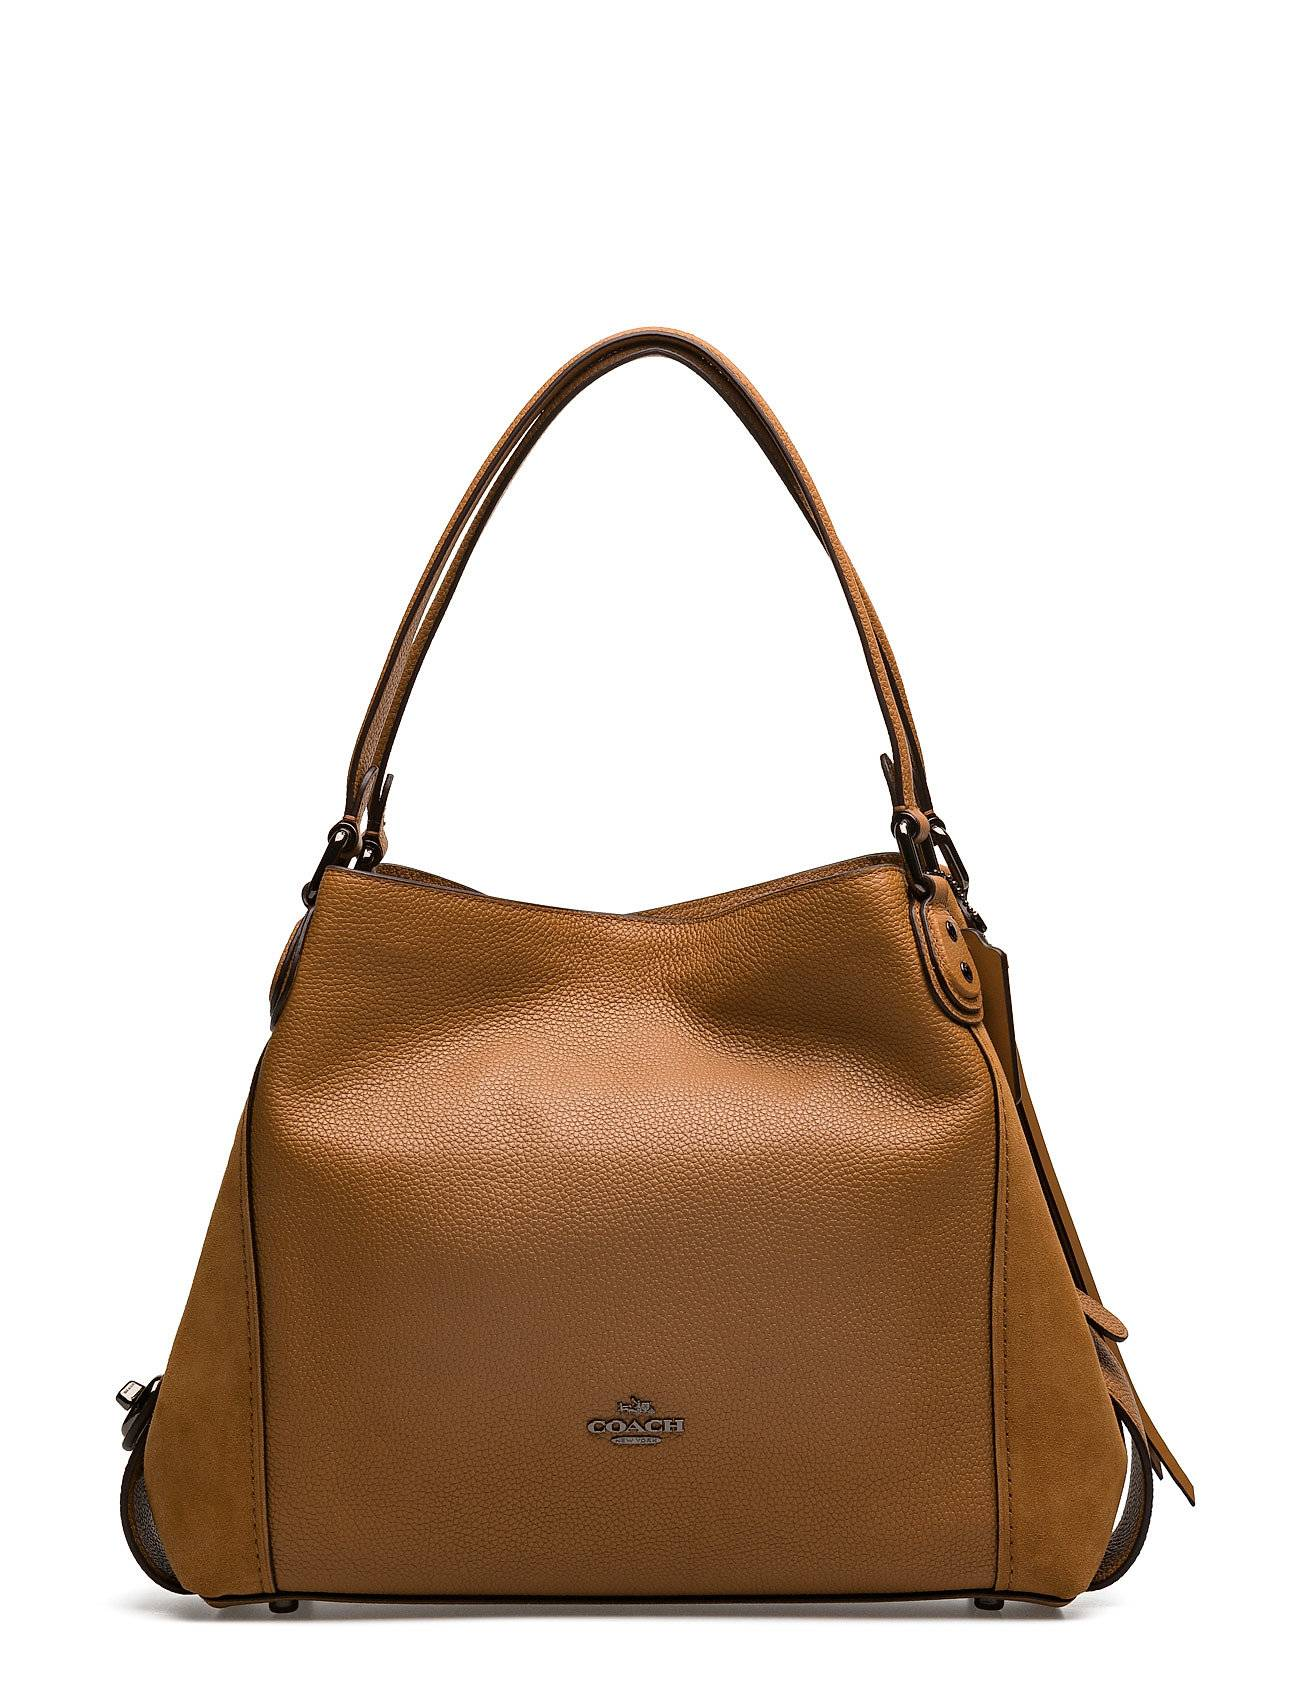 Coach Mixed Leather Edie 31 Shoulder Bag